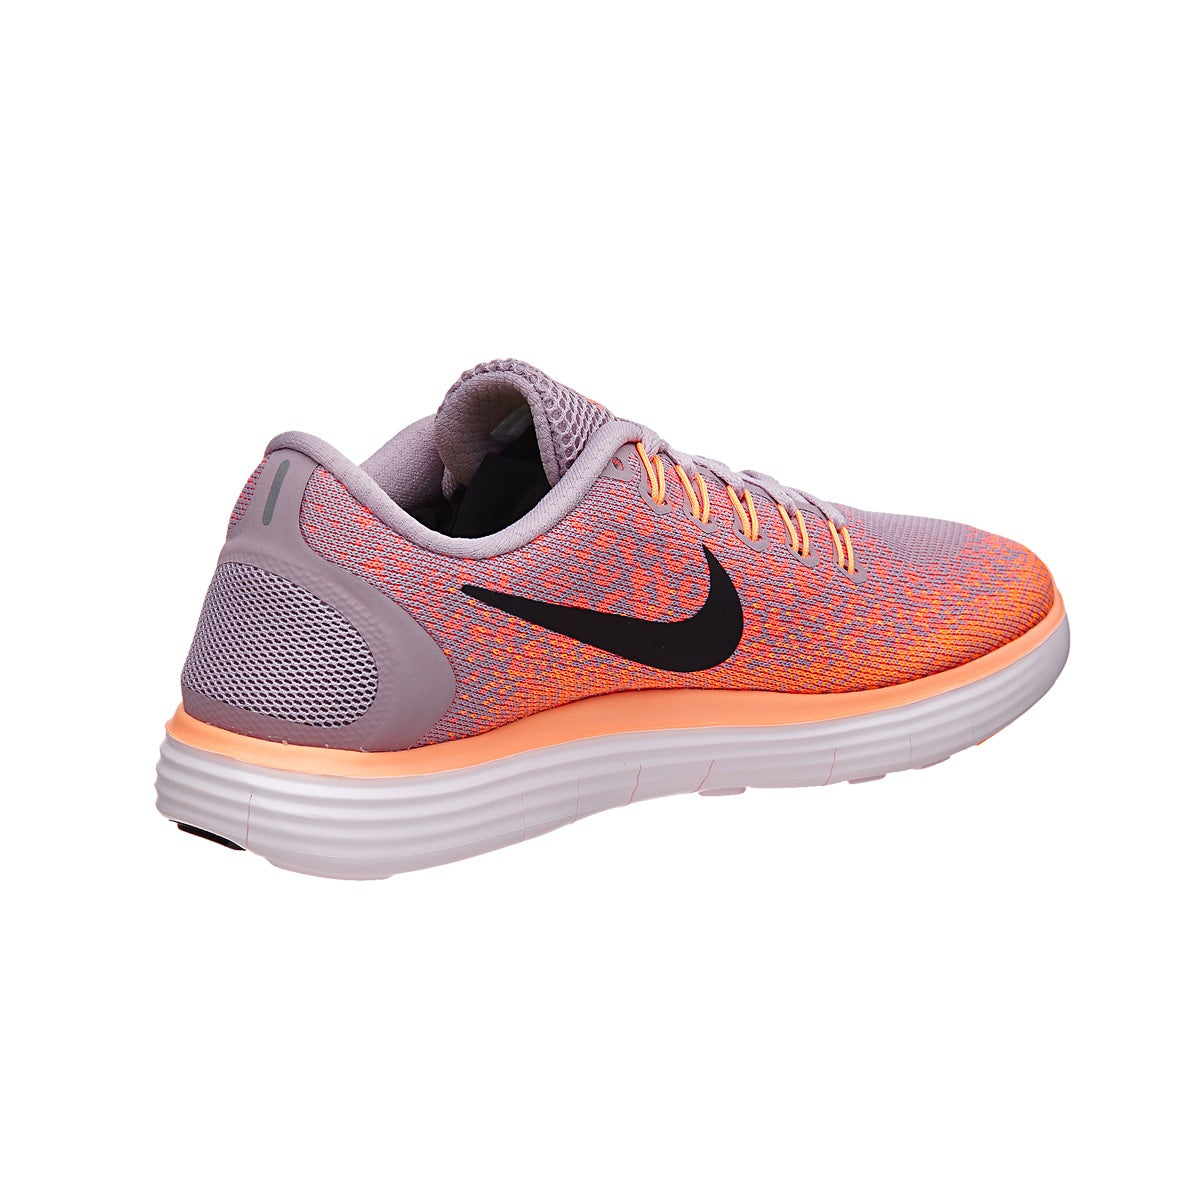 the latest 9407e 48880 best nike free rn distance womens shoes plum fogblack 360 view running  warehouse. 65302 c0fec